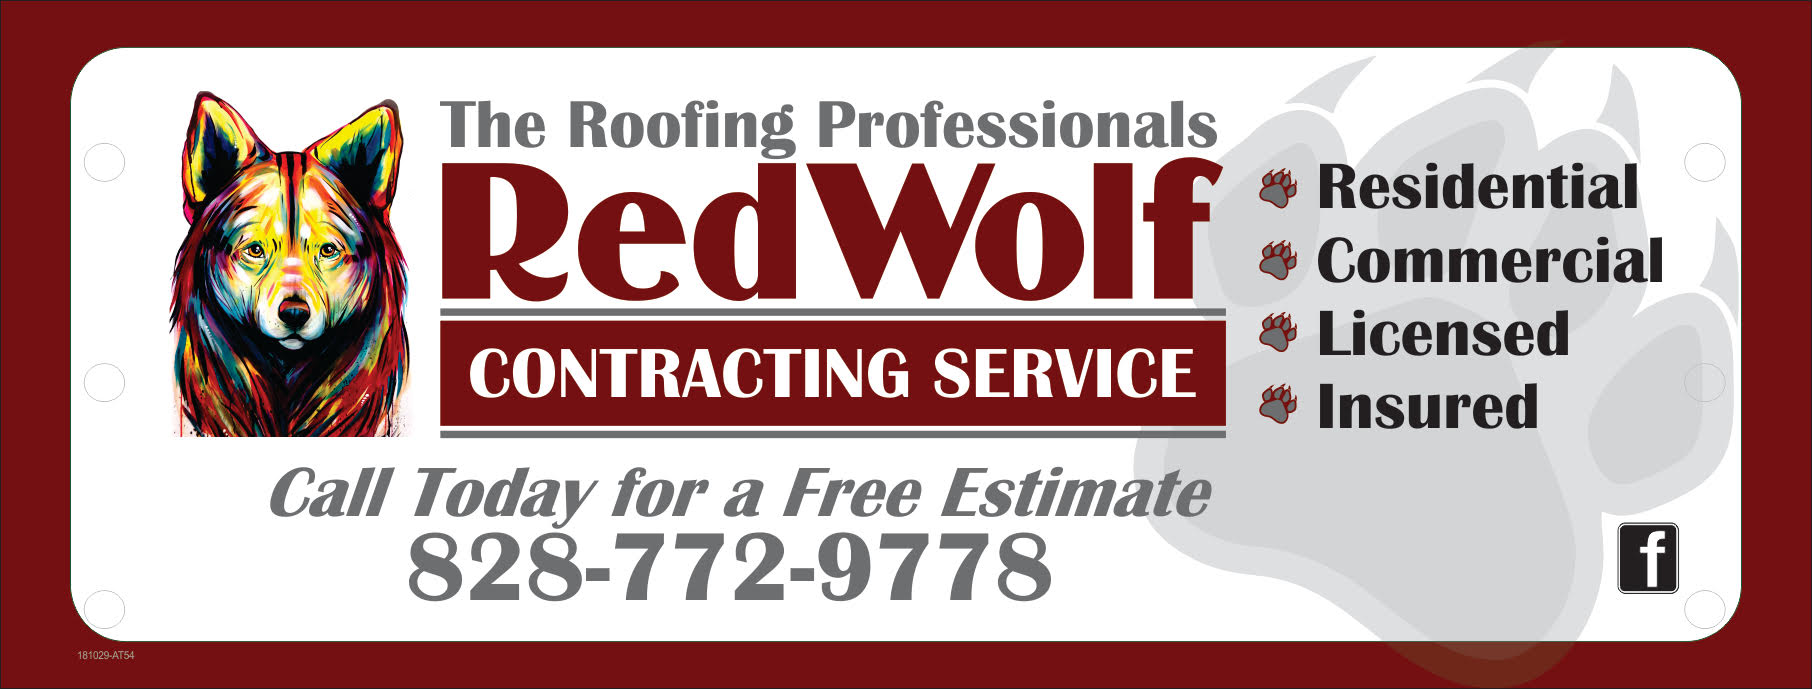 Call Matt at (828)772-9778 for all your roofing repair needs and tell him that Hunter sent you!